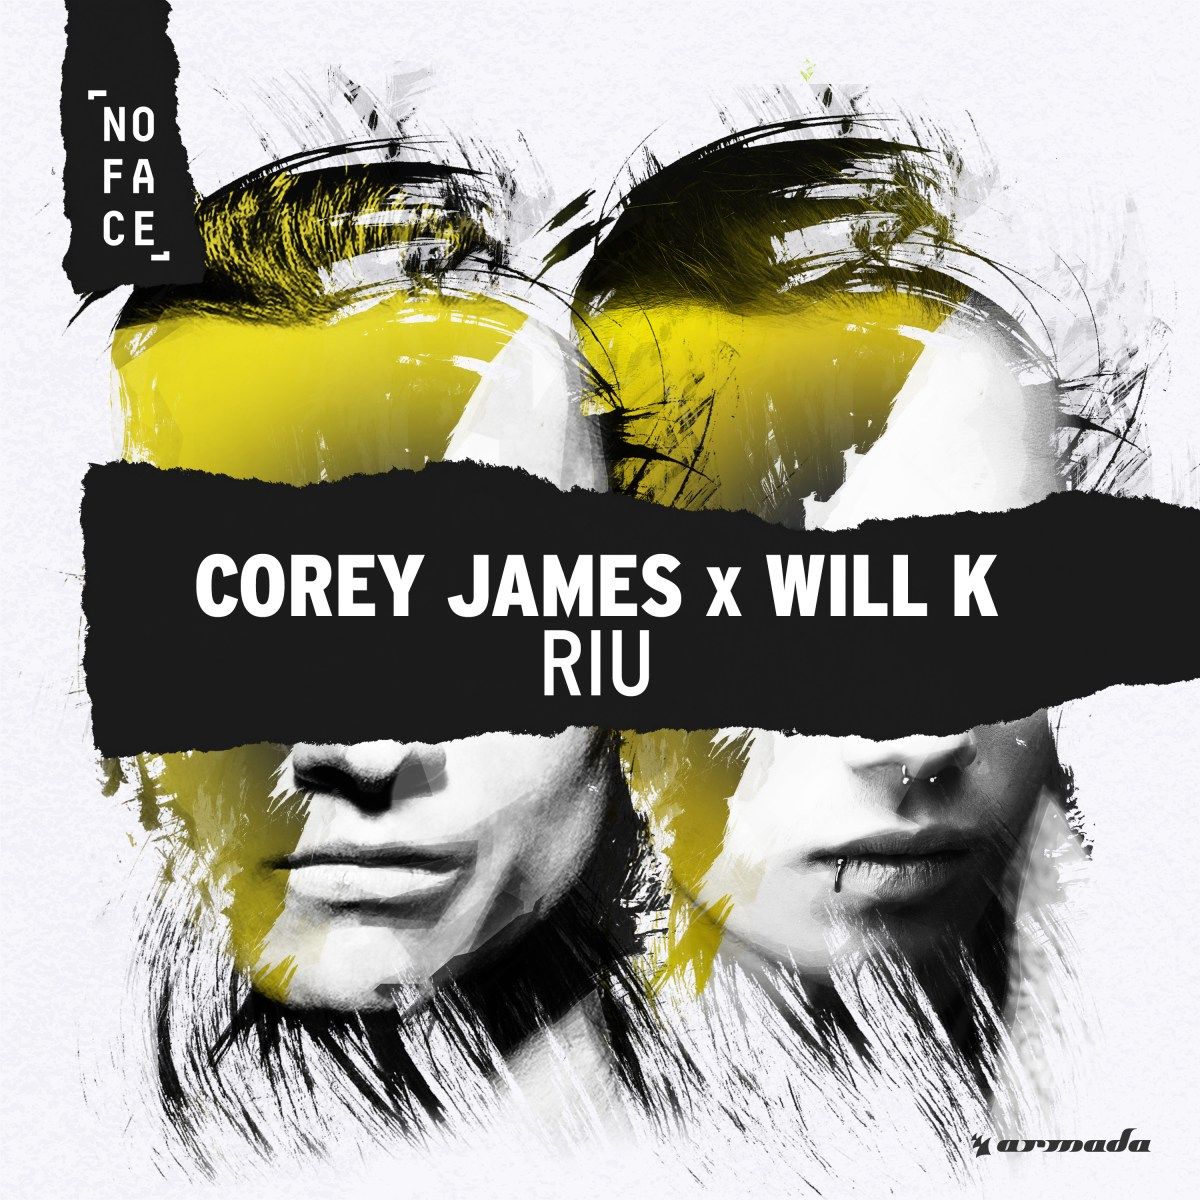 PREMIERE: Corey James x WILL K - RIU [NoFace Records]